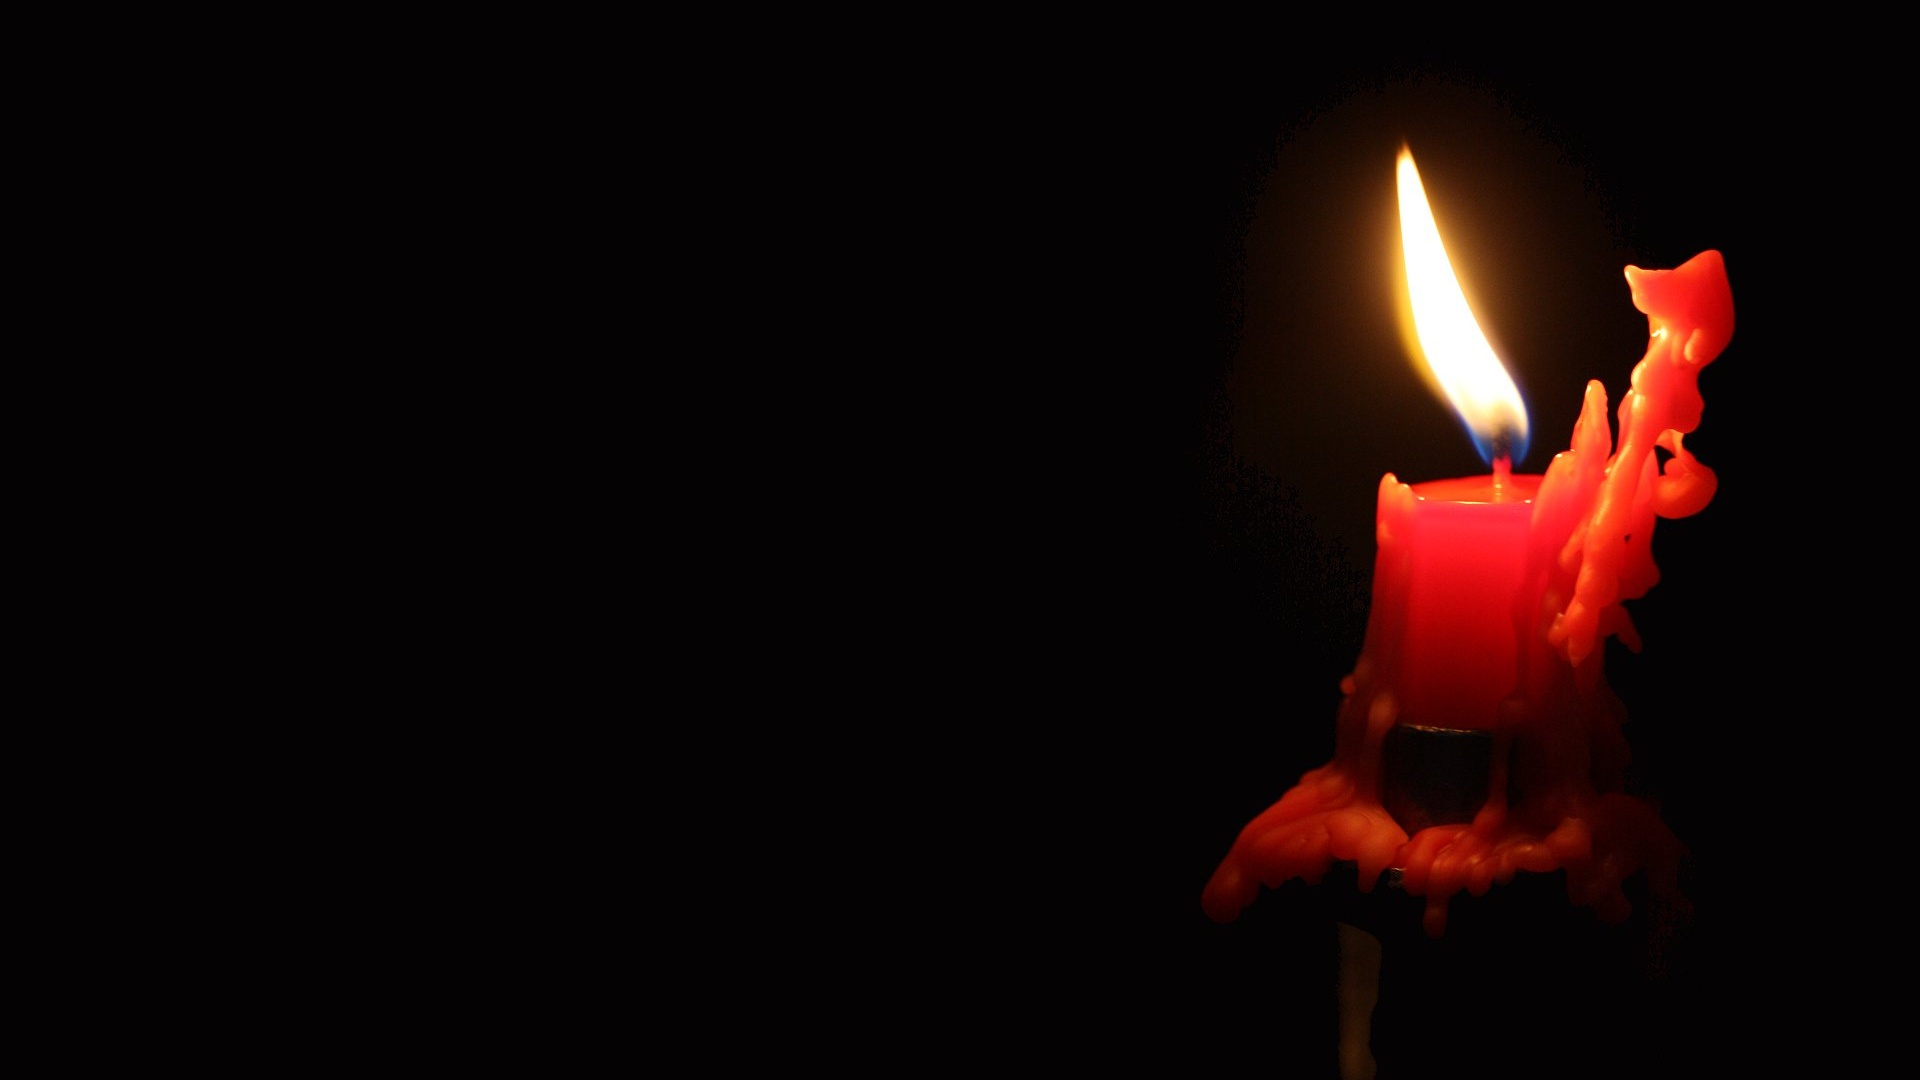 Candles Hd Wallpapers Candle Backgrounds And Images: 1920x1080 Candle Desktop PC And Mac Wallpaper